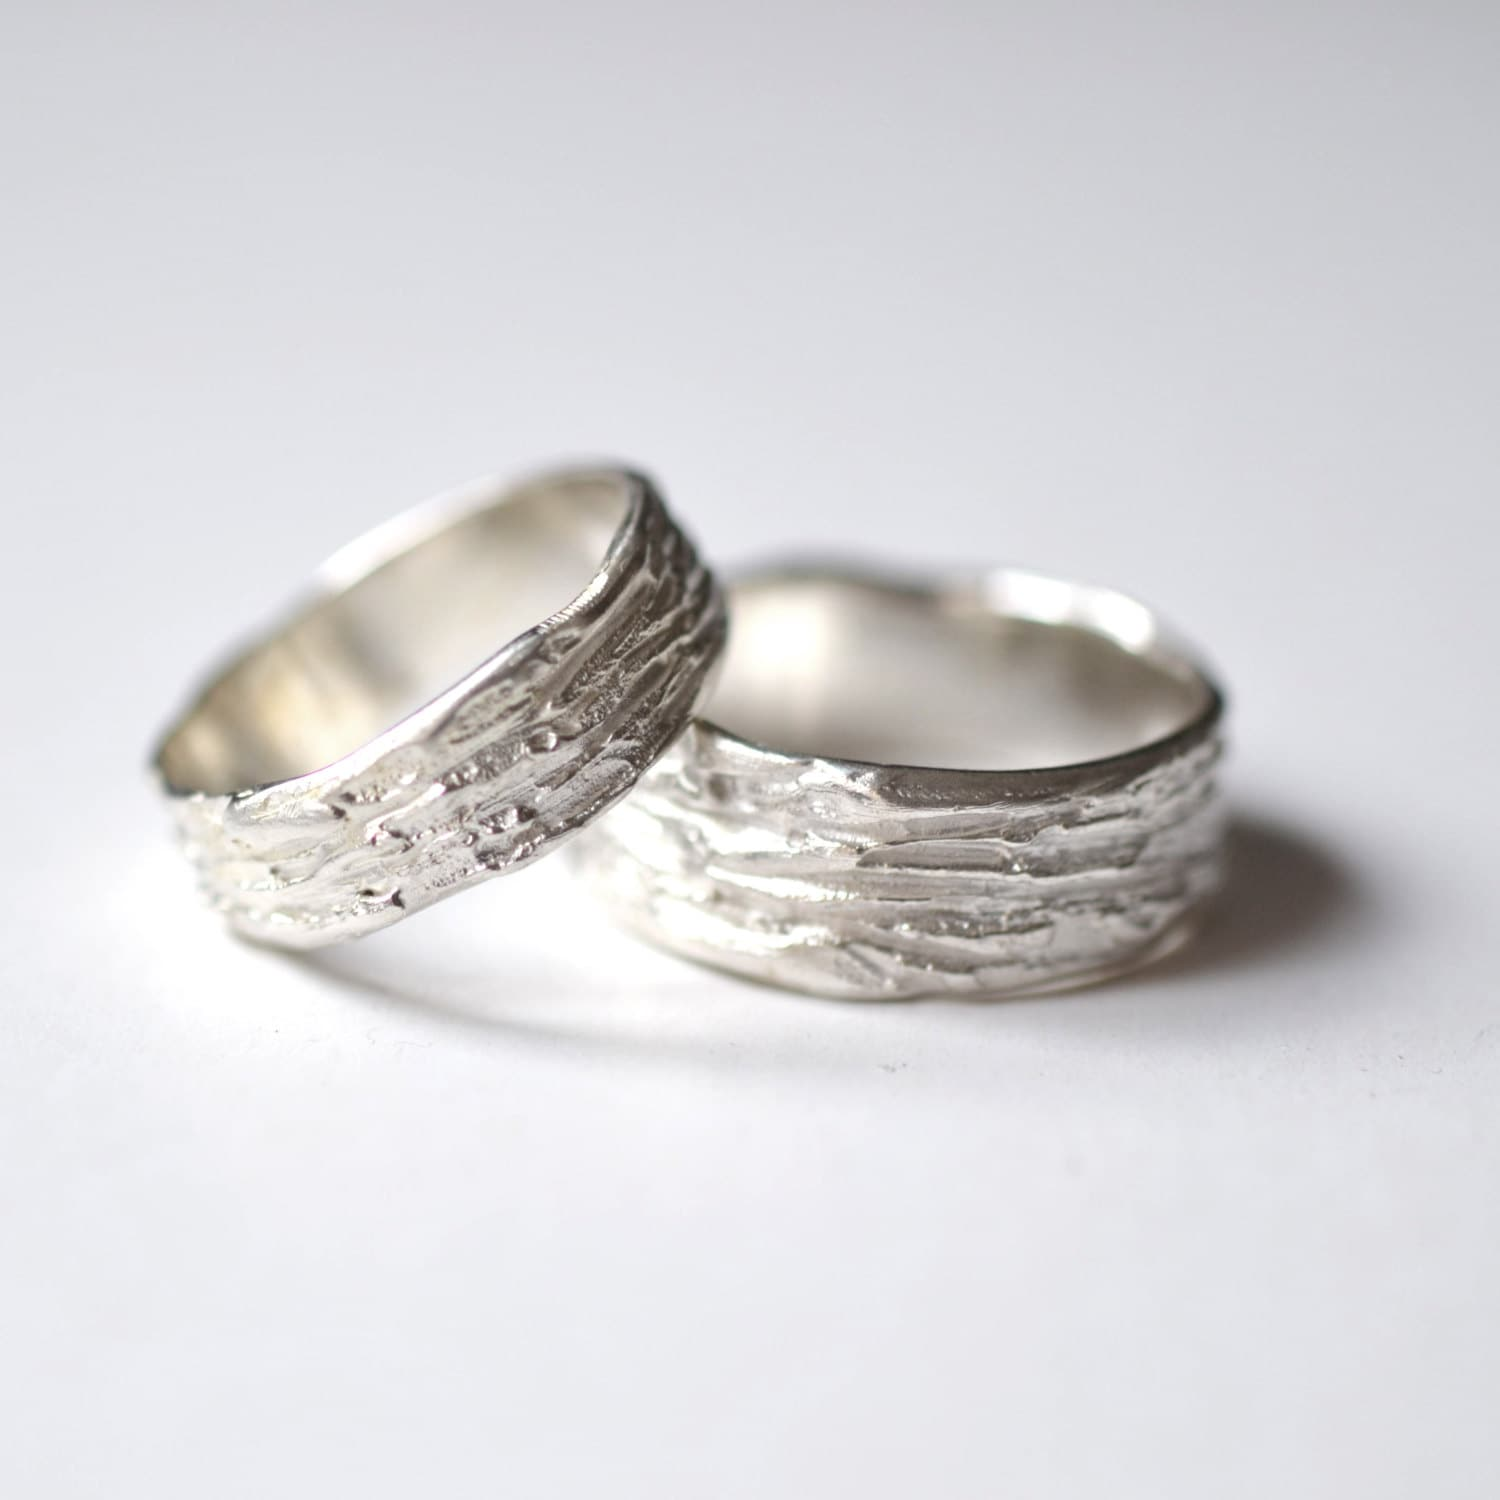 Rustic Wedding Rings Silver Textured Wedding Bands Scratched. Bride Rings. Chunky Necklace. Silver Ankle Bracelet. Lover Bracelet. Paper Pendant. Champagne Diamond Engagement Rings. Large Diamond Stud Earrings. Hood Earrings